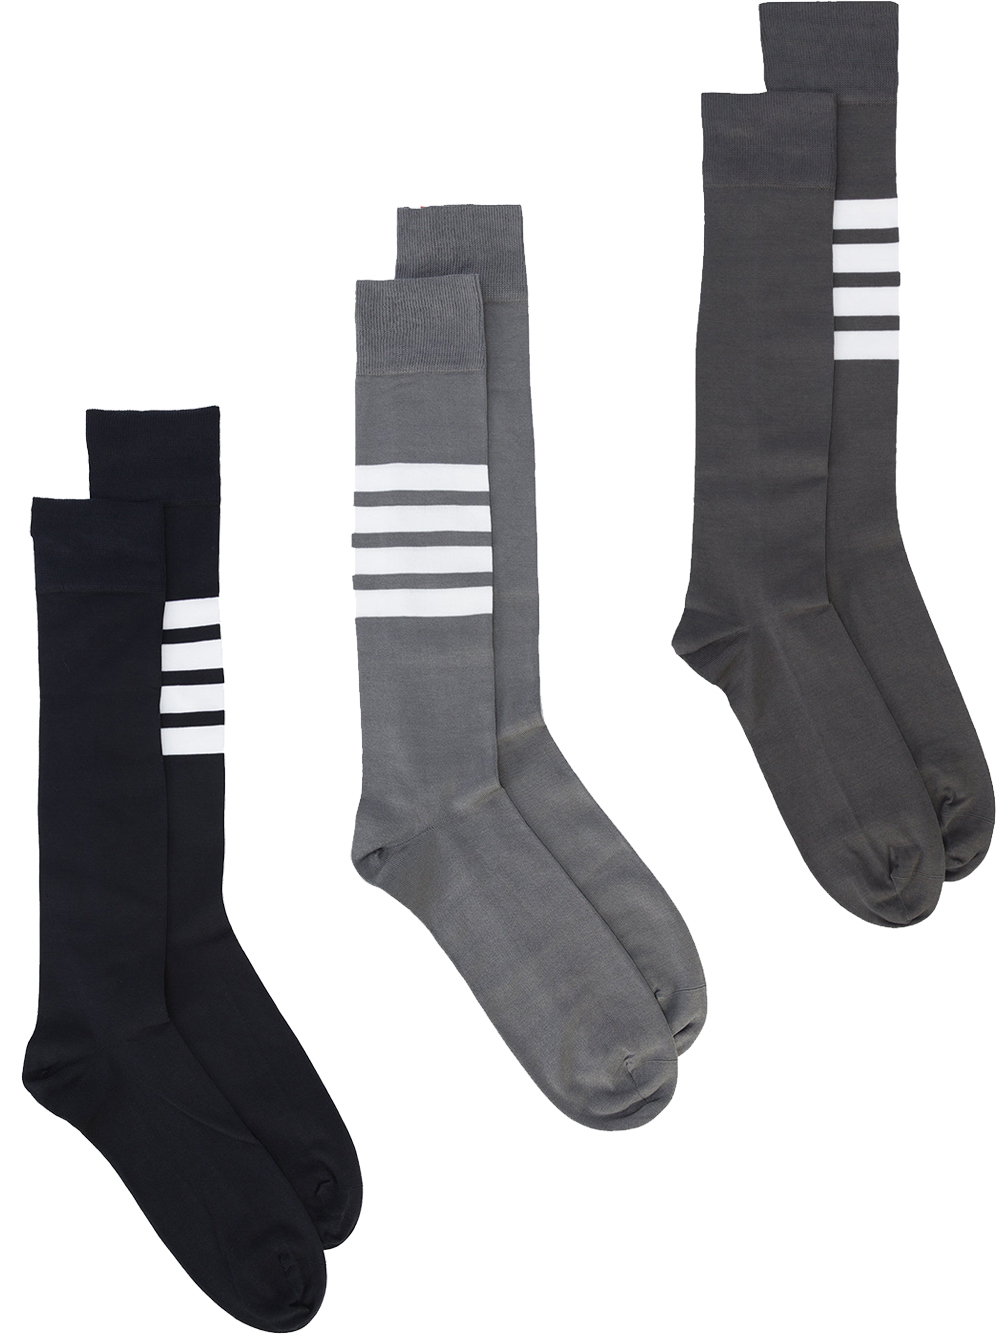 Thom Browne   Engineered Four Bar Stripe Socks